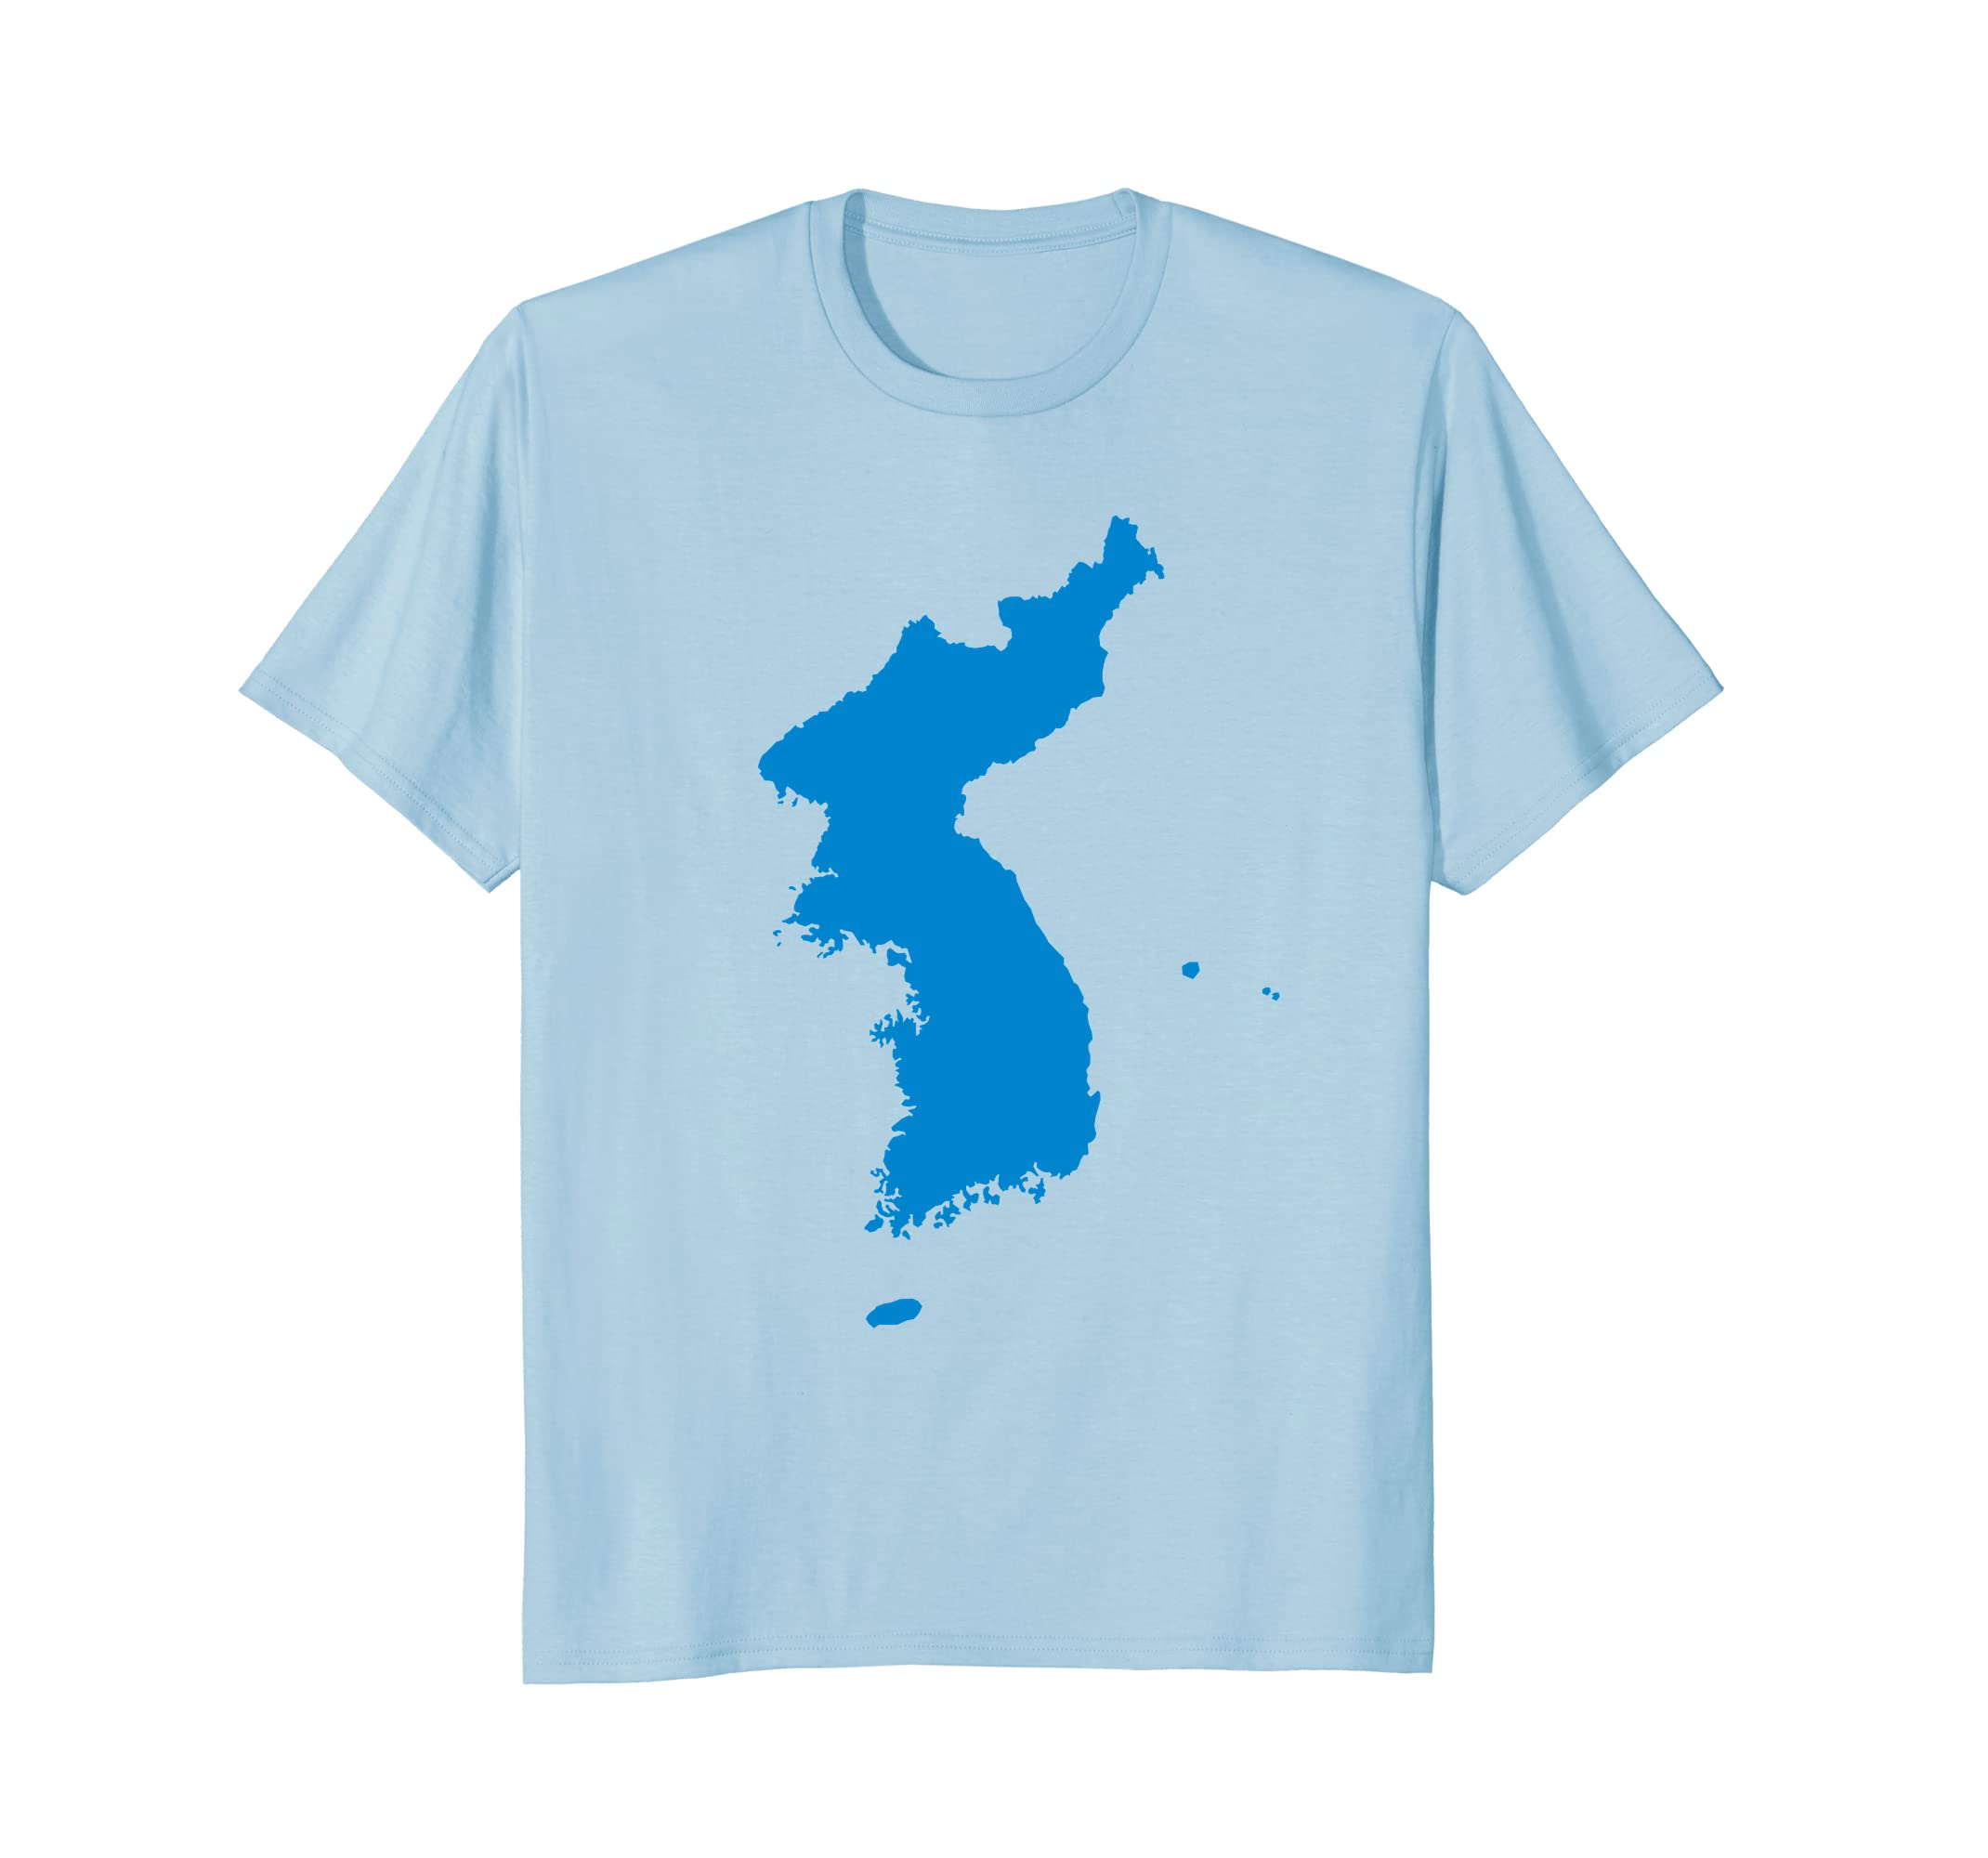 Korean Peninsula Map T-Shirt-Awarplus